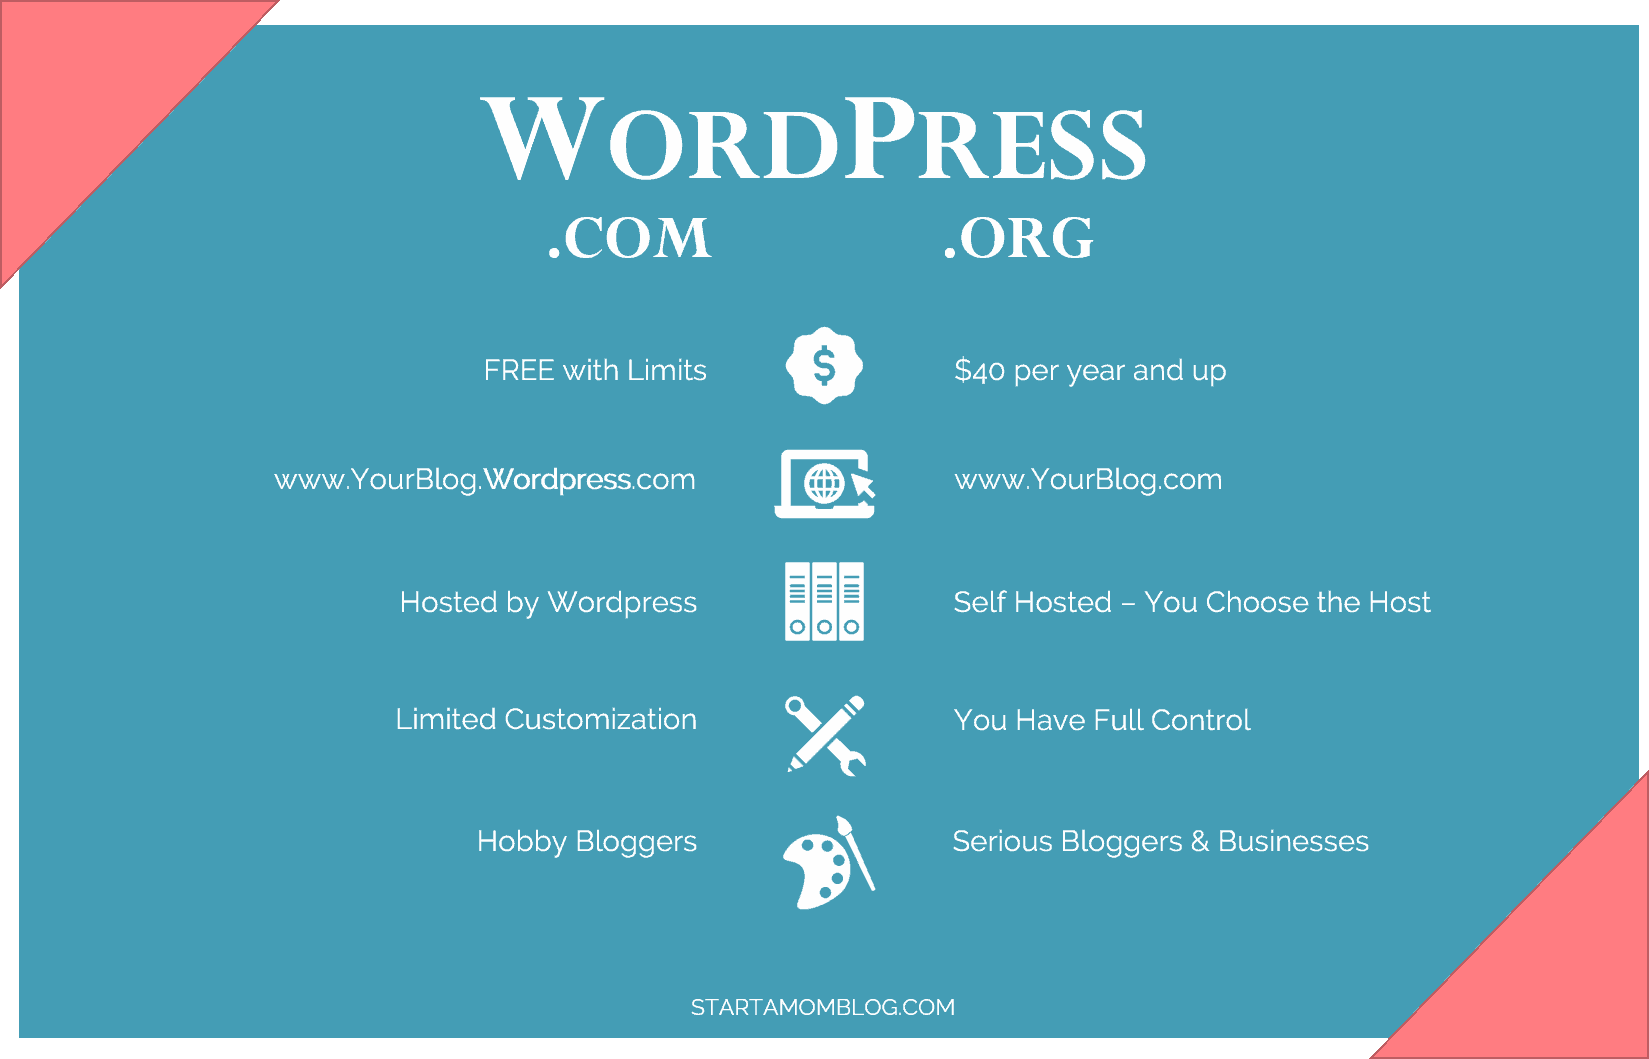 wordpress.org vs wordpress.com startamomblog